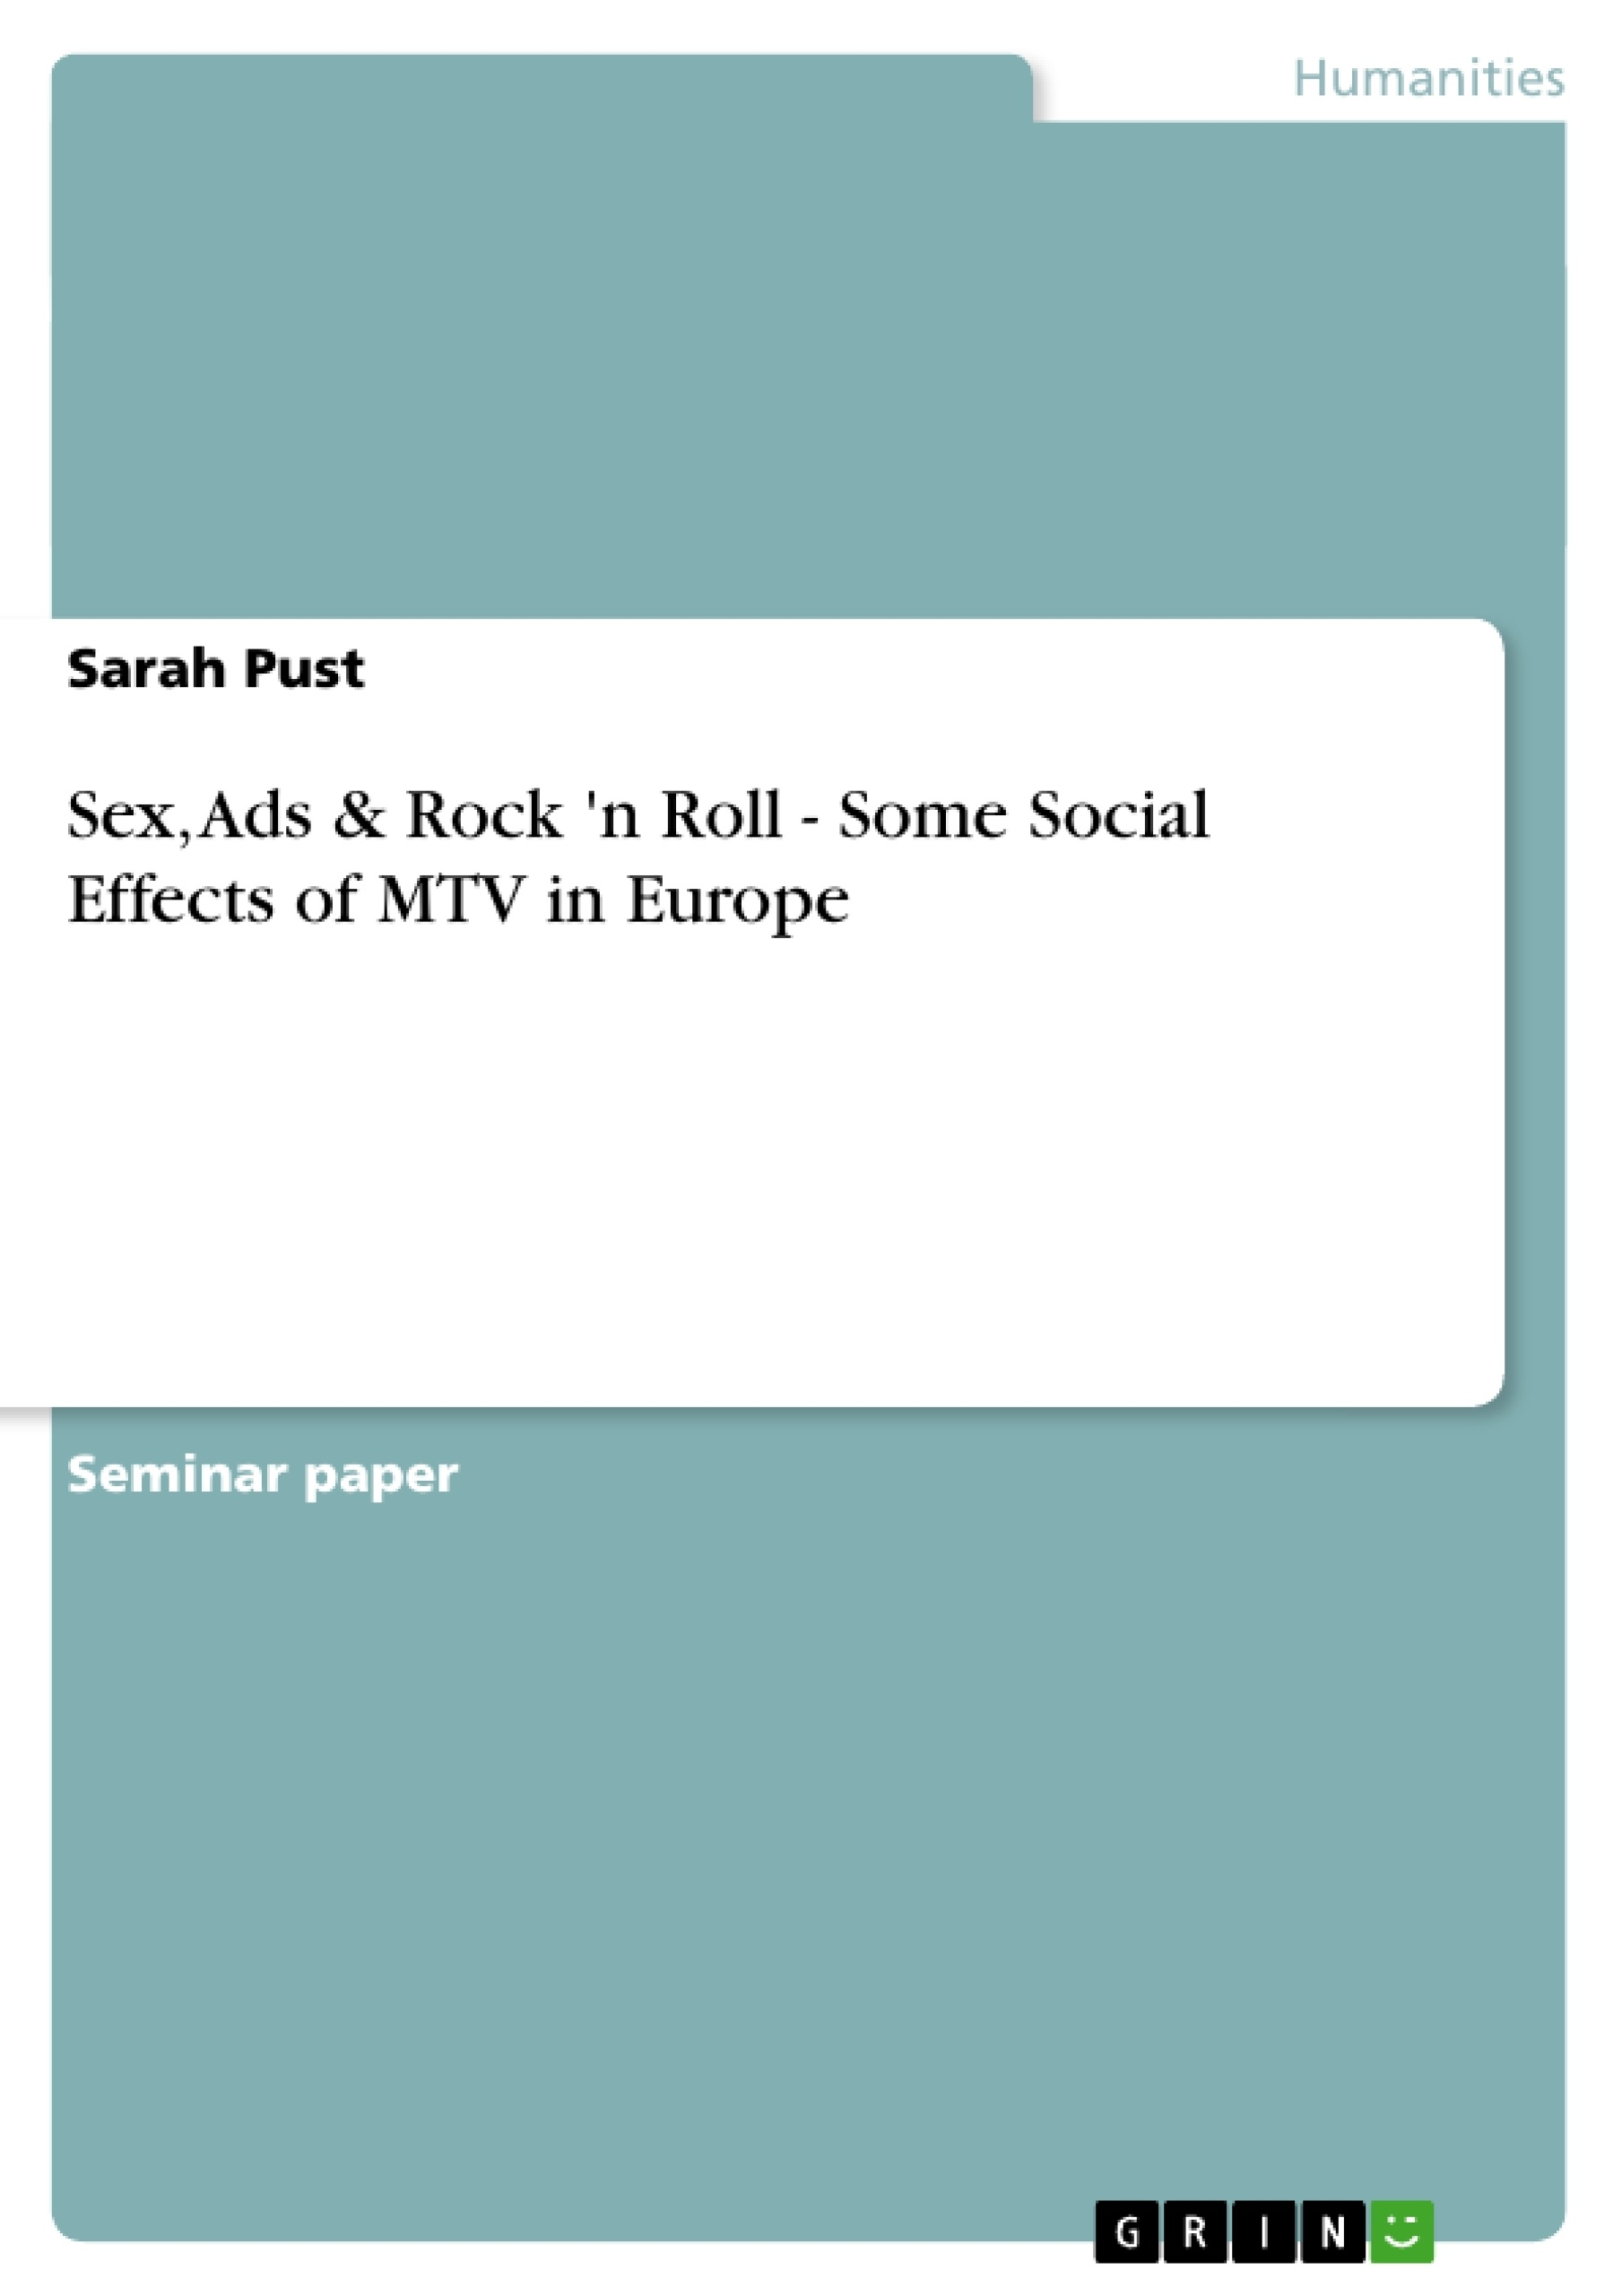 Title: Sex, Ads & Rock 'n Roll - Some Social Effects of MTV in Europe